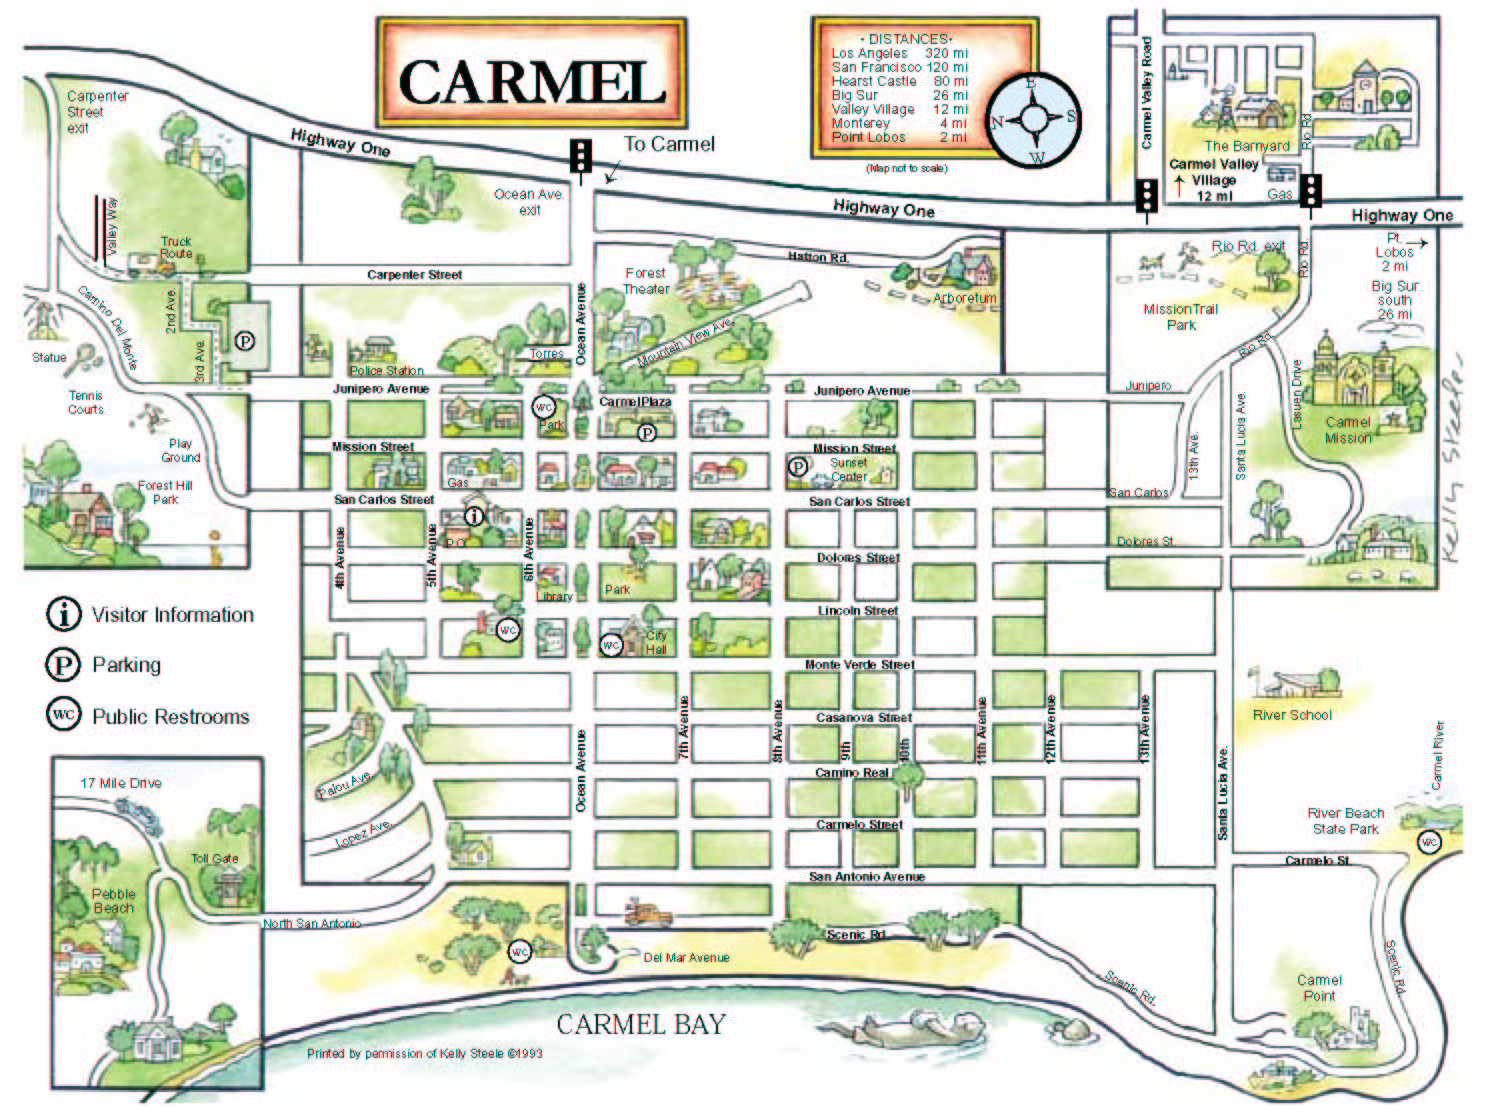 eureka ca map with Map Of Carmel Ca on Mendocino directions furthermore C bell Calif besides 360301379 as well Victorianvillageinn further 4110838561.